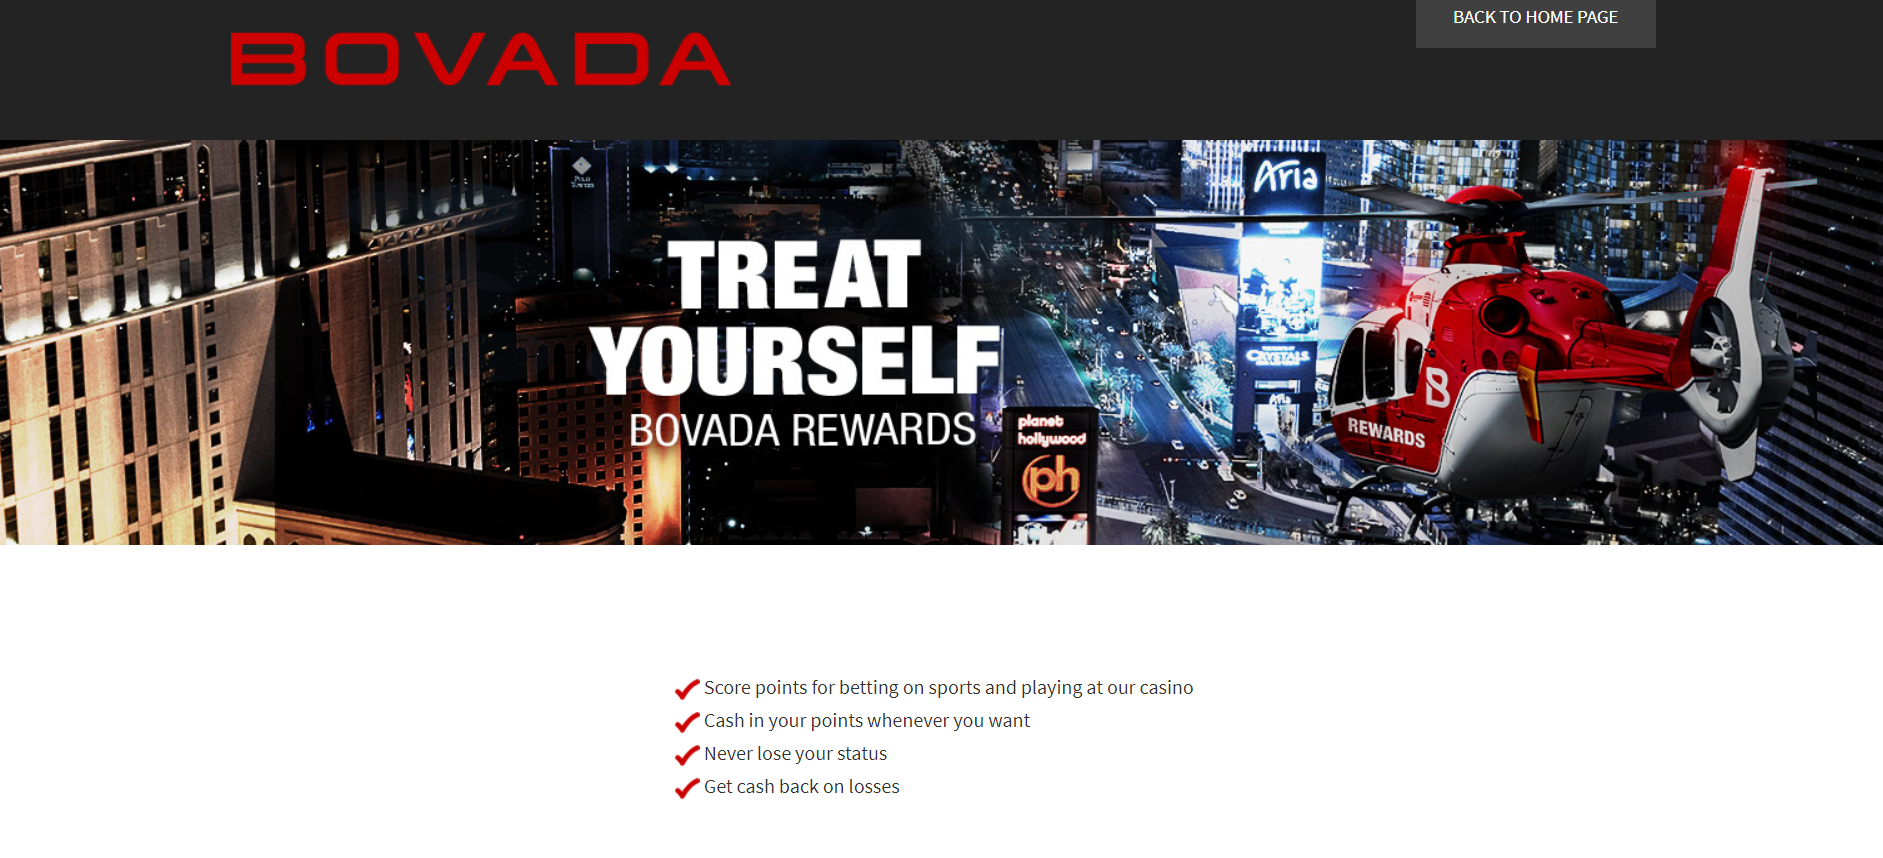 Bovada Review Rewards Promo